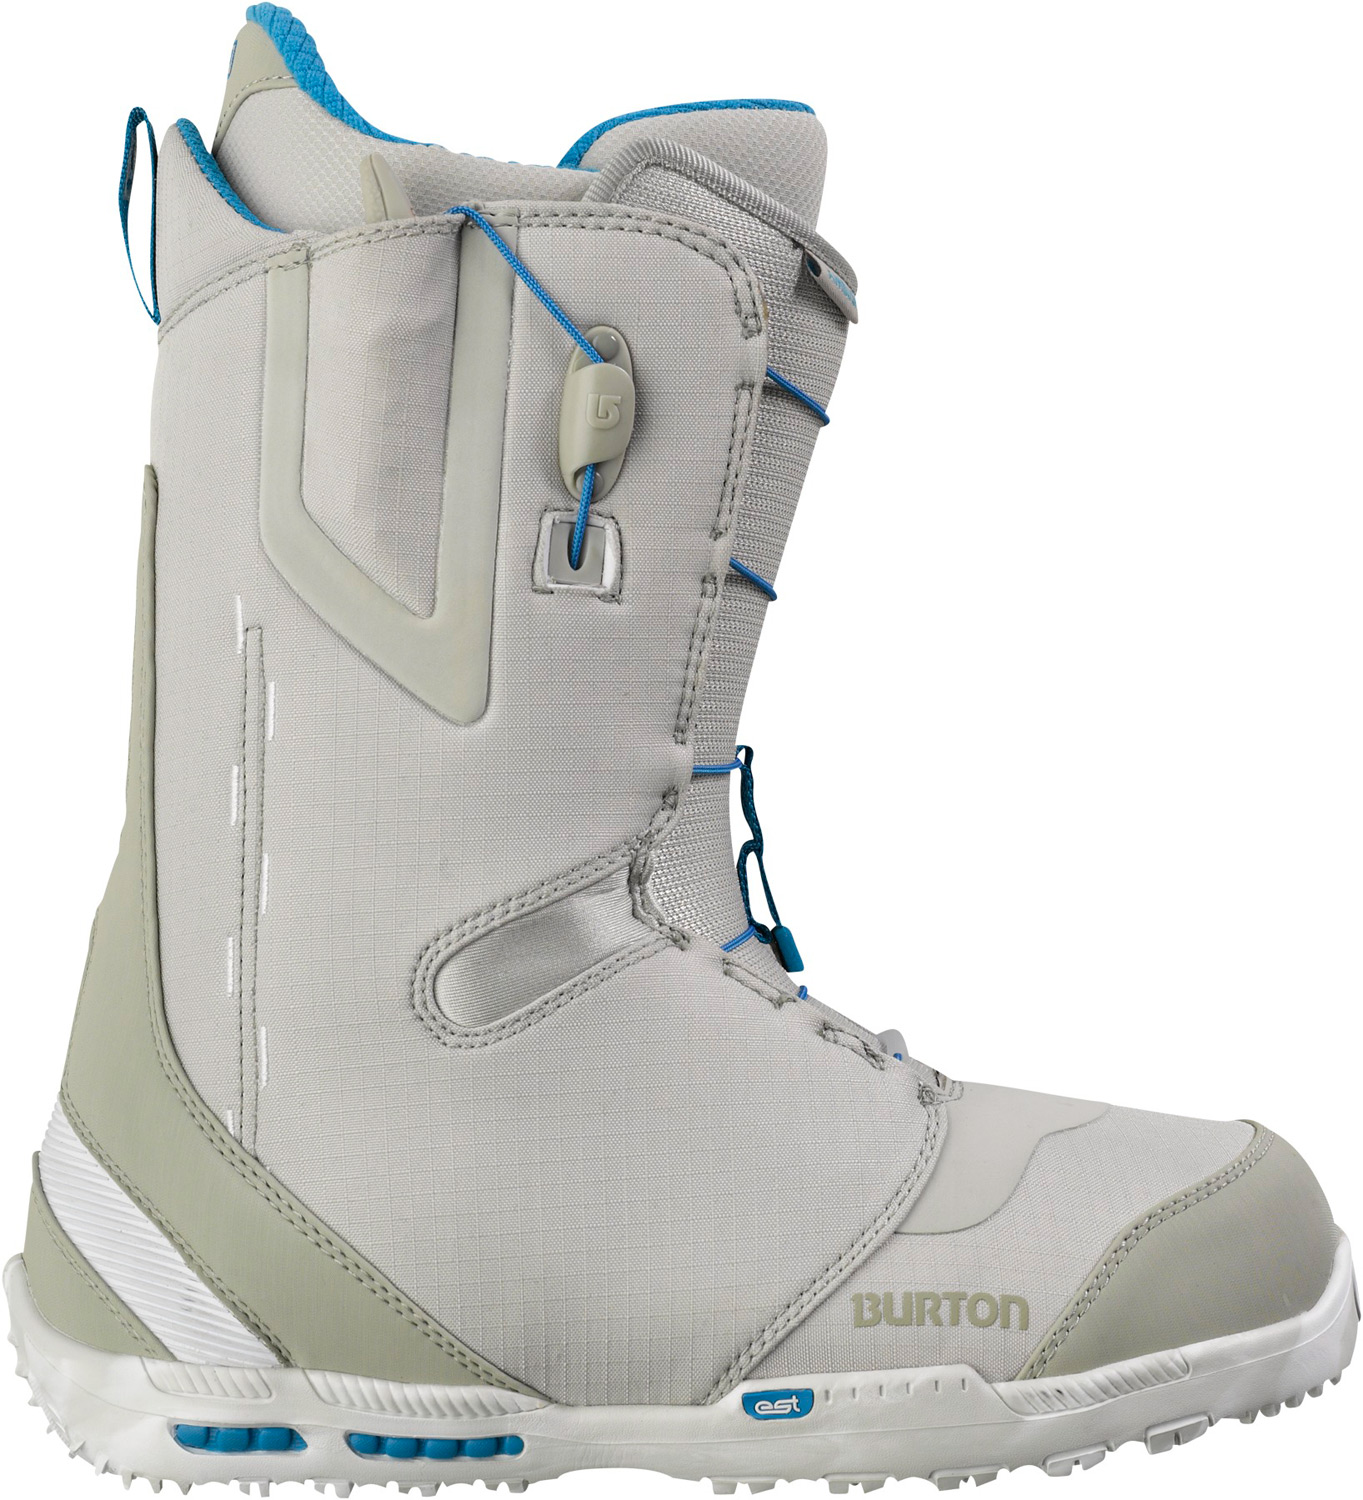 Snowboard A wealth of stealth in a lightweight leader.Key Features of the Burton Ambush Snowboard Boots:  Support: 5  Shrinkage Footprint Reduction Technology  Lacing: Speed Zone Lacing System for True Zonal Lacing Control [Featuring Winder Handles]  Liner: Imprint 3 Liner with Rad Pad  Cushioning: DynoLite EST Optimized Outsole with B3 Gel  Flex and Response: Wishbone Upper Cuff, Oversized Flex Notches, Medium Flex Thin Profile 3D Molded Tongue and Flex Spine Backstay Design  Comfort: Total Comfort Construction, Snow-Proof Internal Gusset and Level 2 Molded EVA Footbed with ESS Support Shank and Aegis Antimicrobial Coating - $167.95